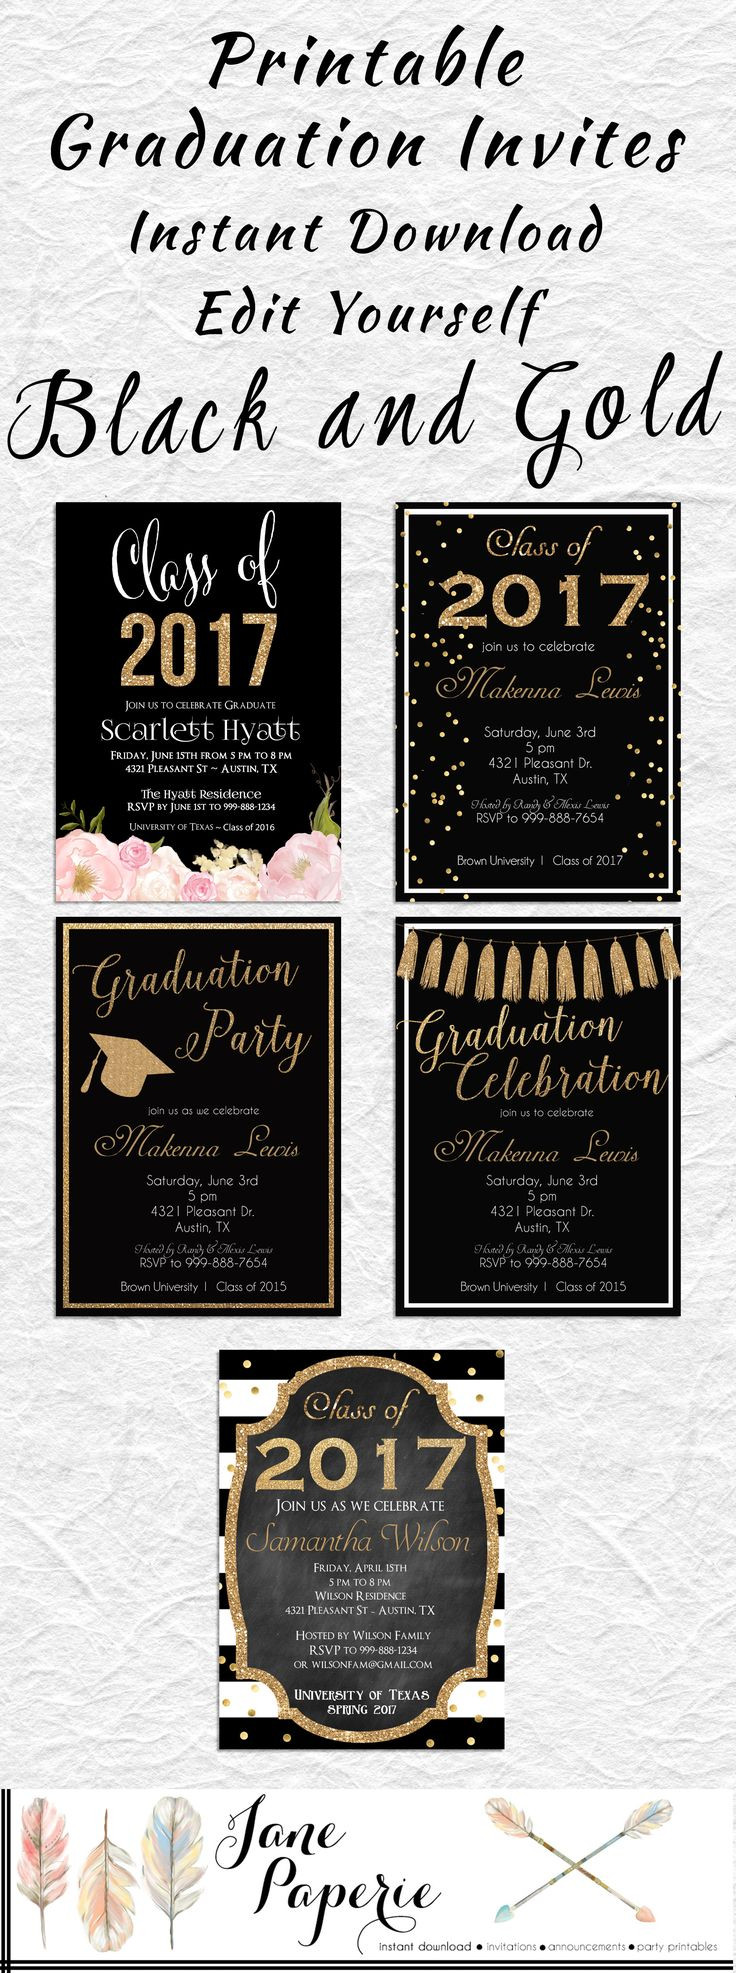 Graduation Party Invitations Ideas  Best 25 High school graduation invitations ideas on